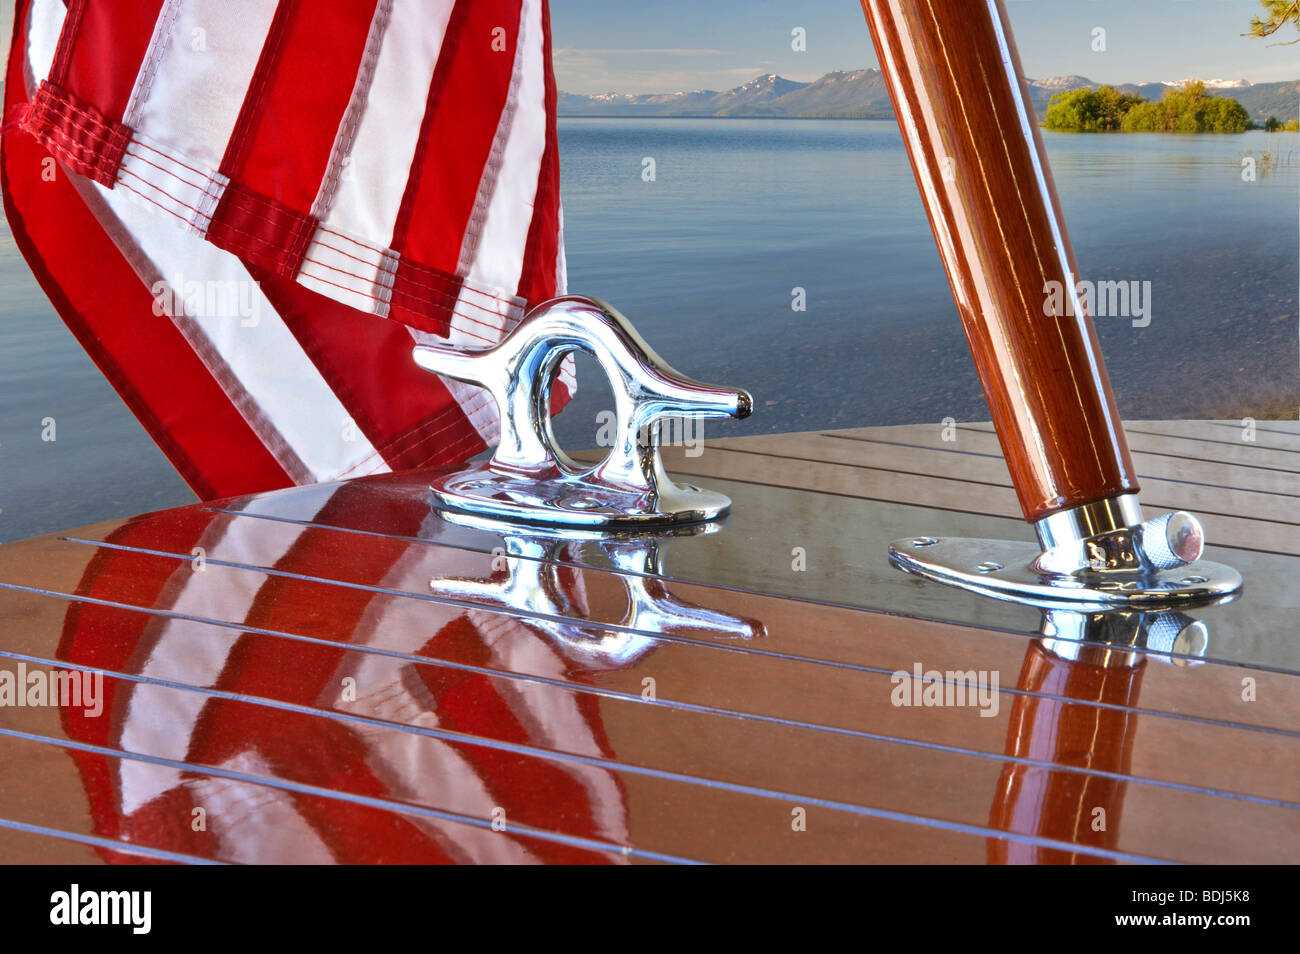 American flag and chrome fittings on Hacker craft wooden boat. Lake Tahoe. California - Stock Image